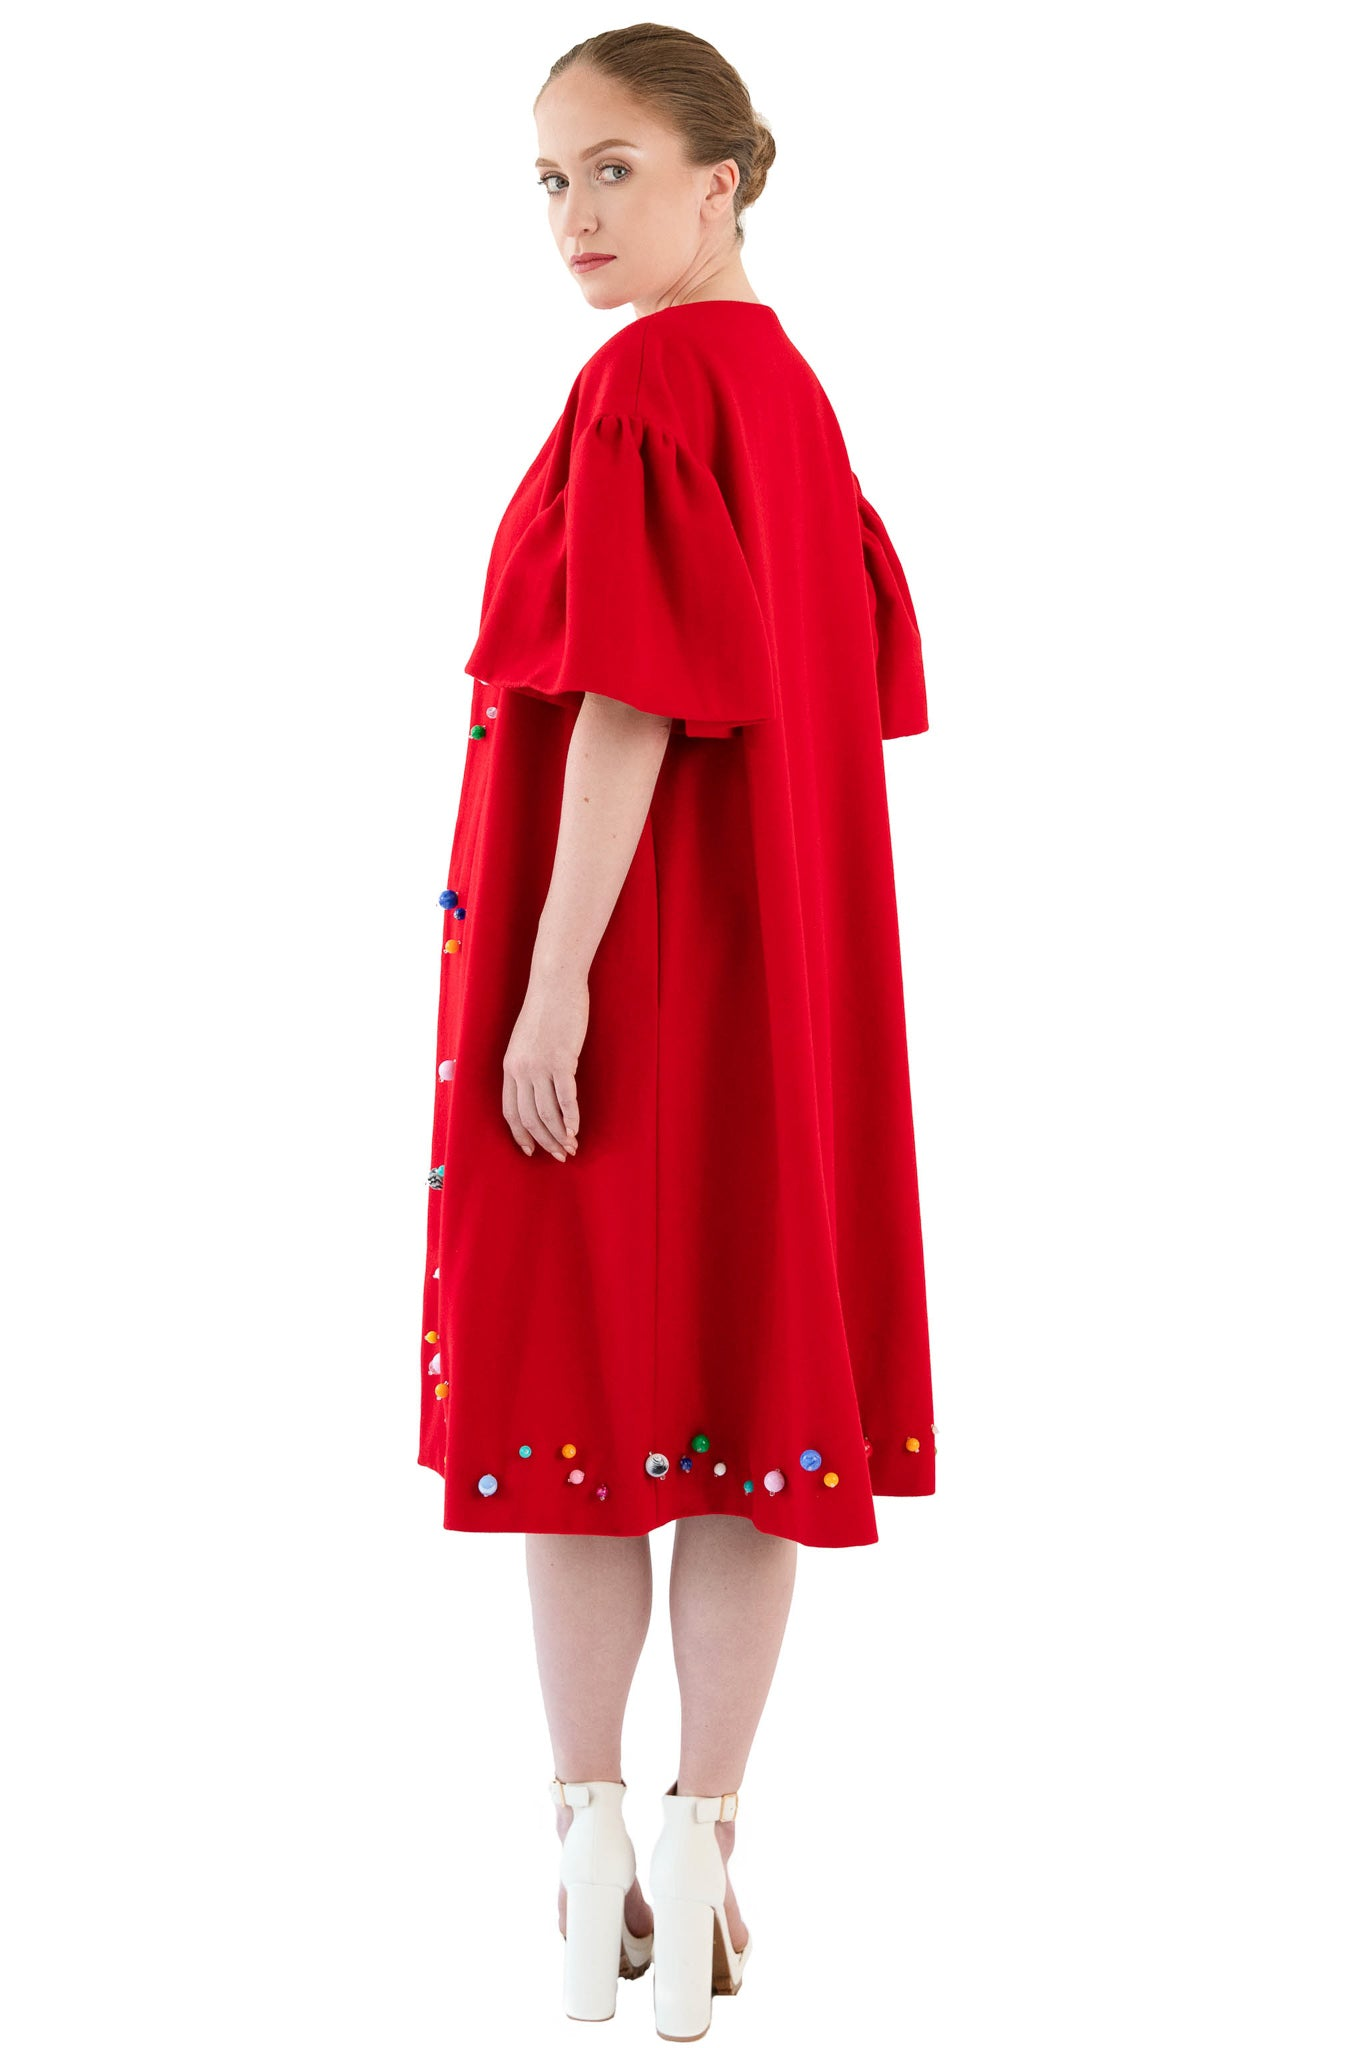 Women's red wool beaded opera coat